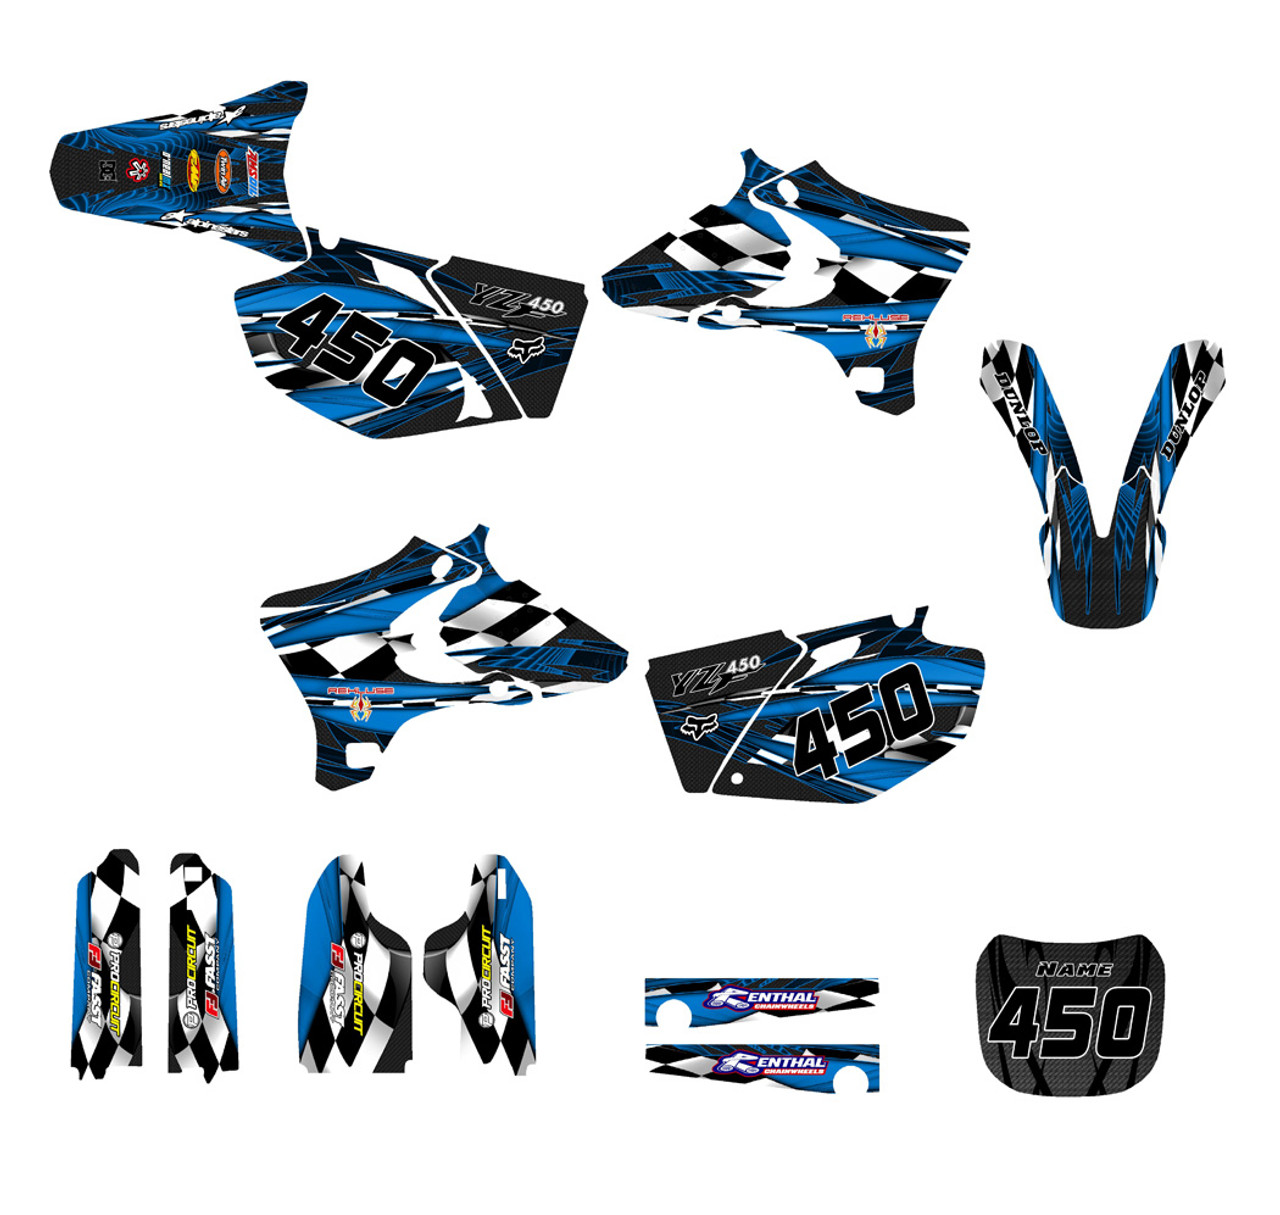 2003-2005 Yamaha Custom YZ250F and YZ450F graphics kit